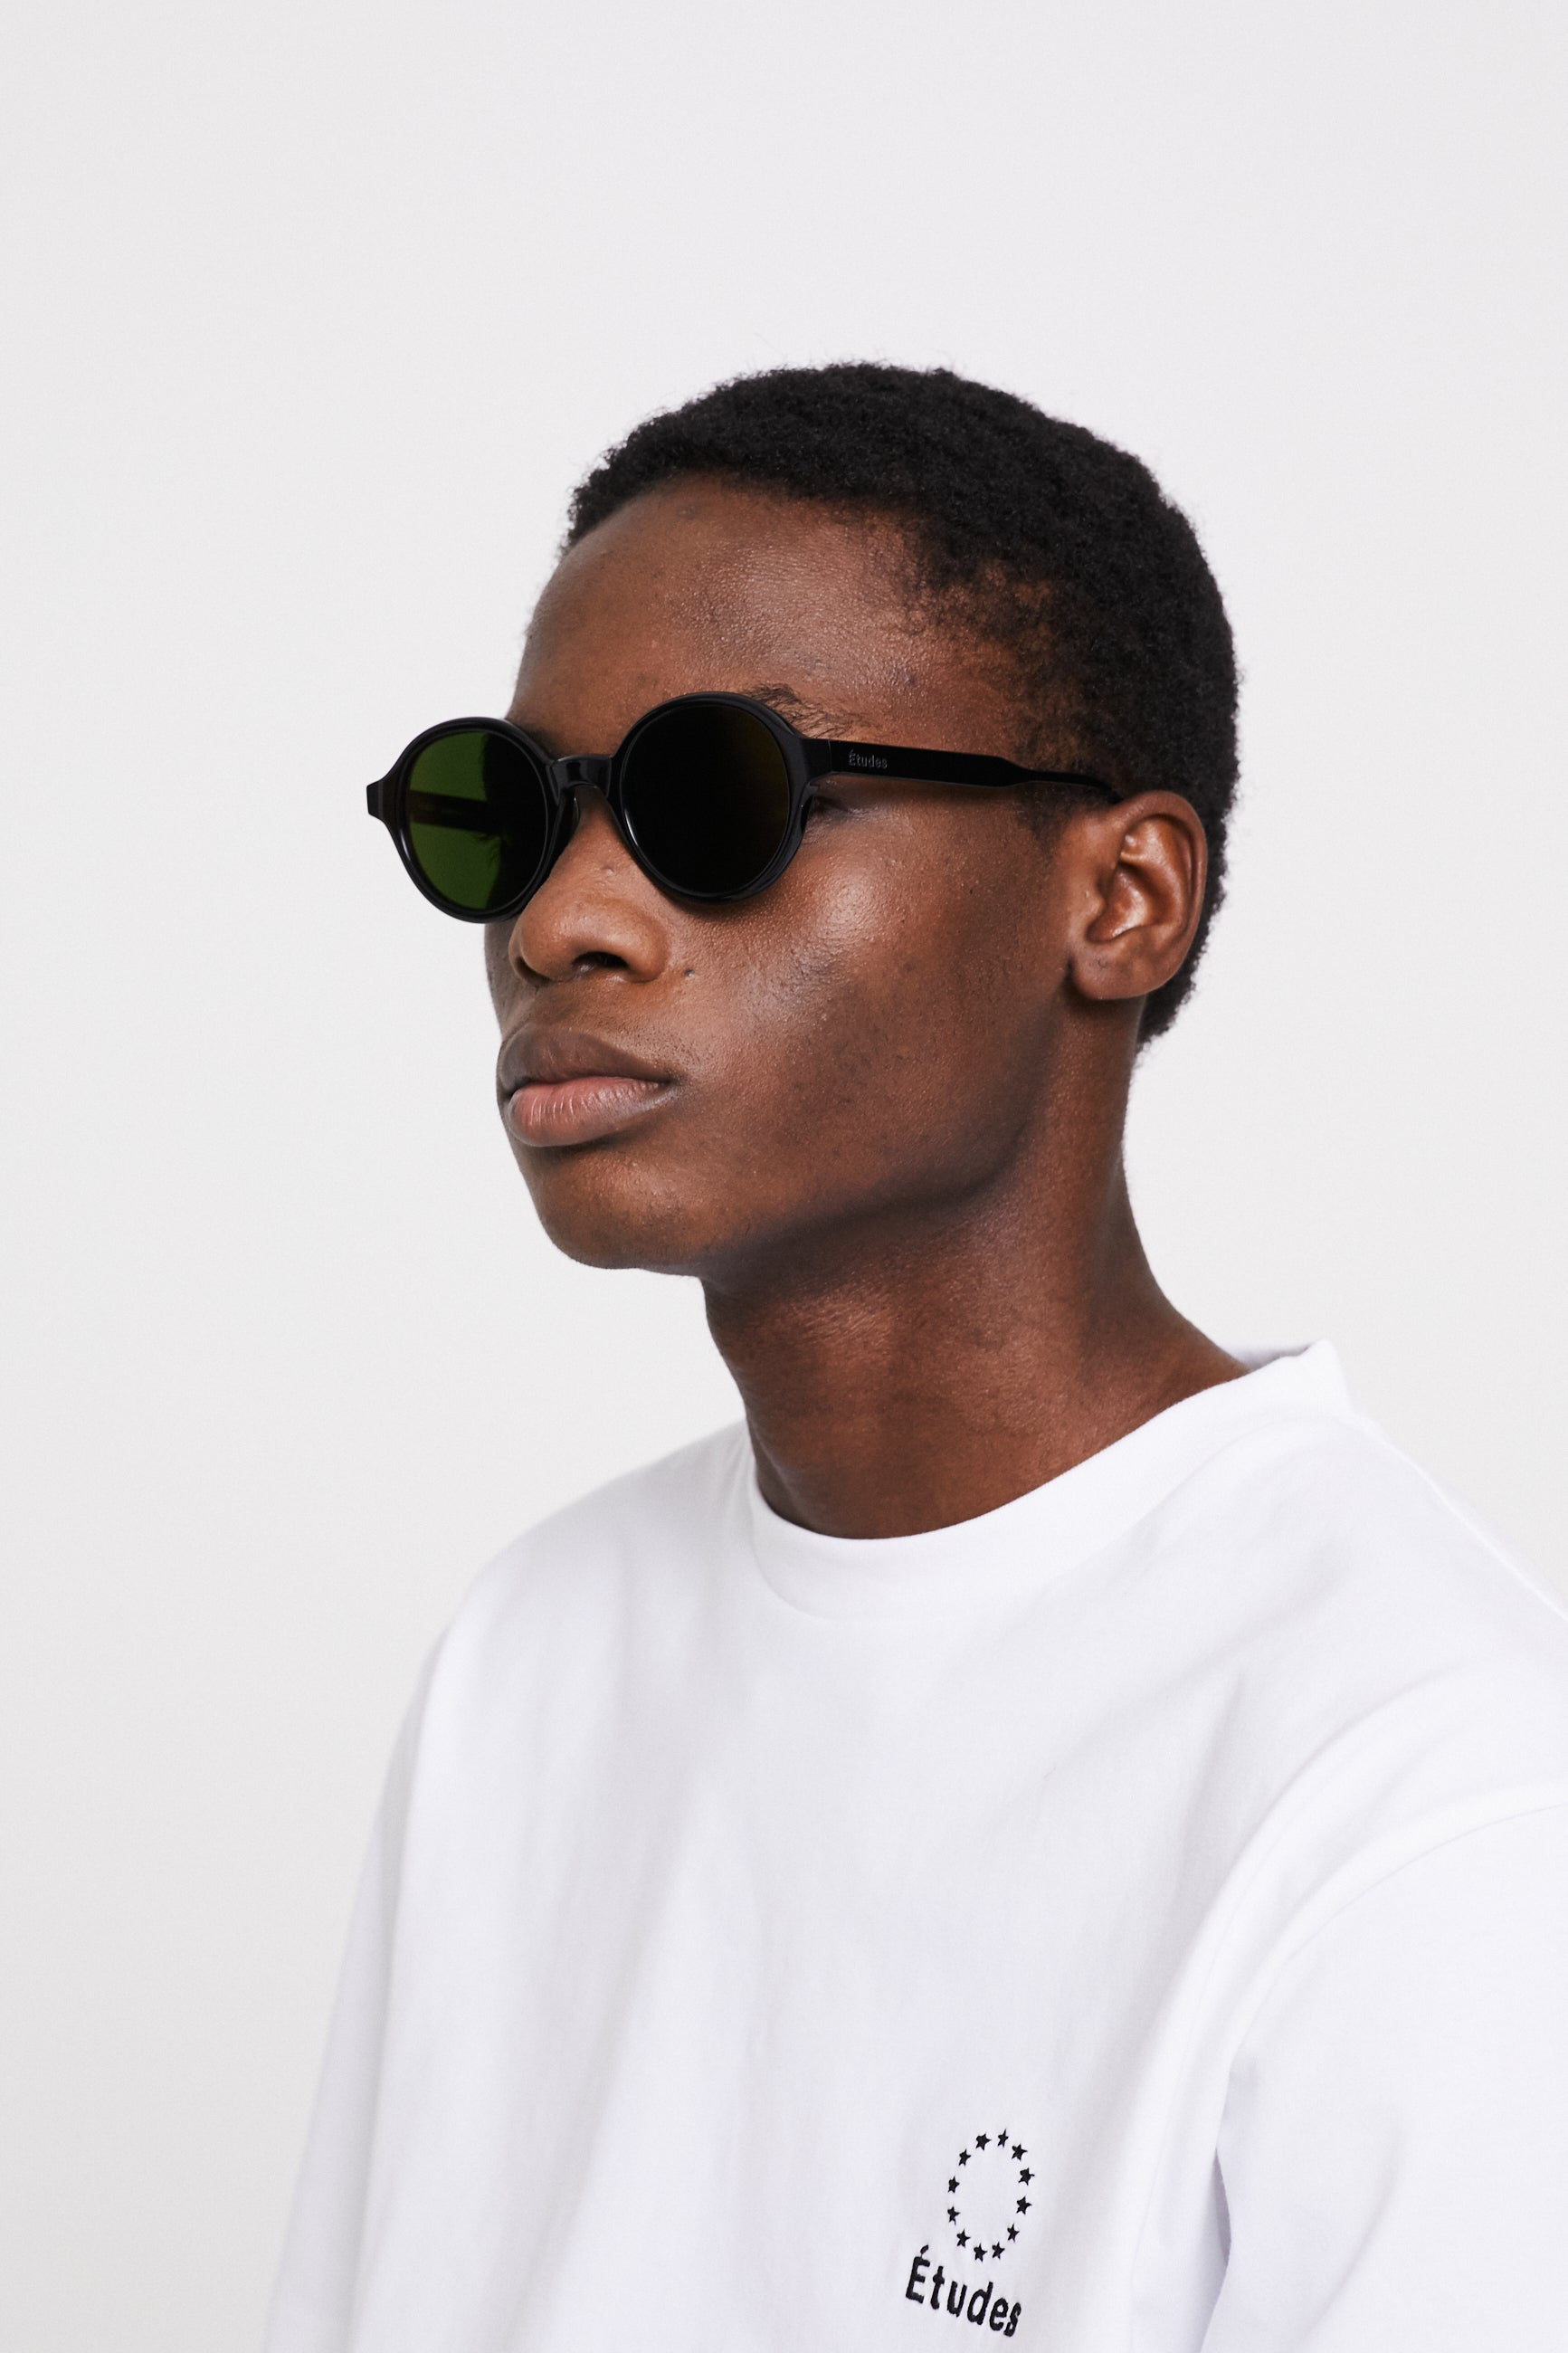 Études Bakayoko Black Sunglasses 2